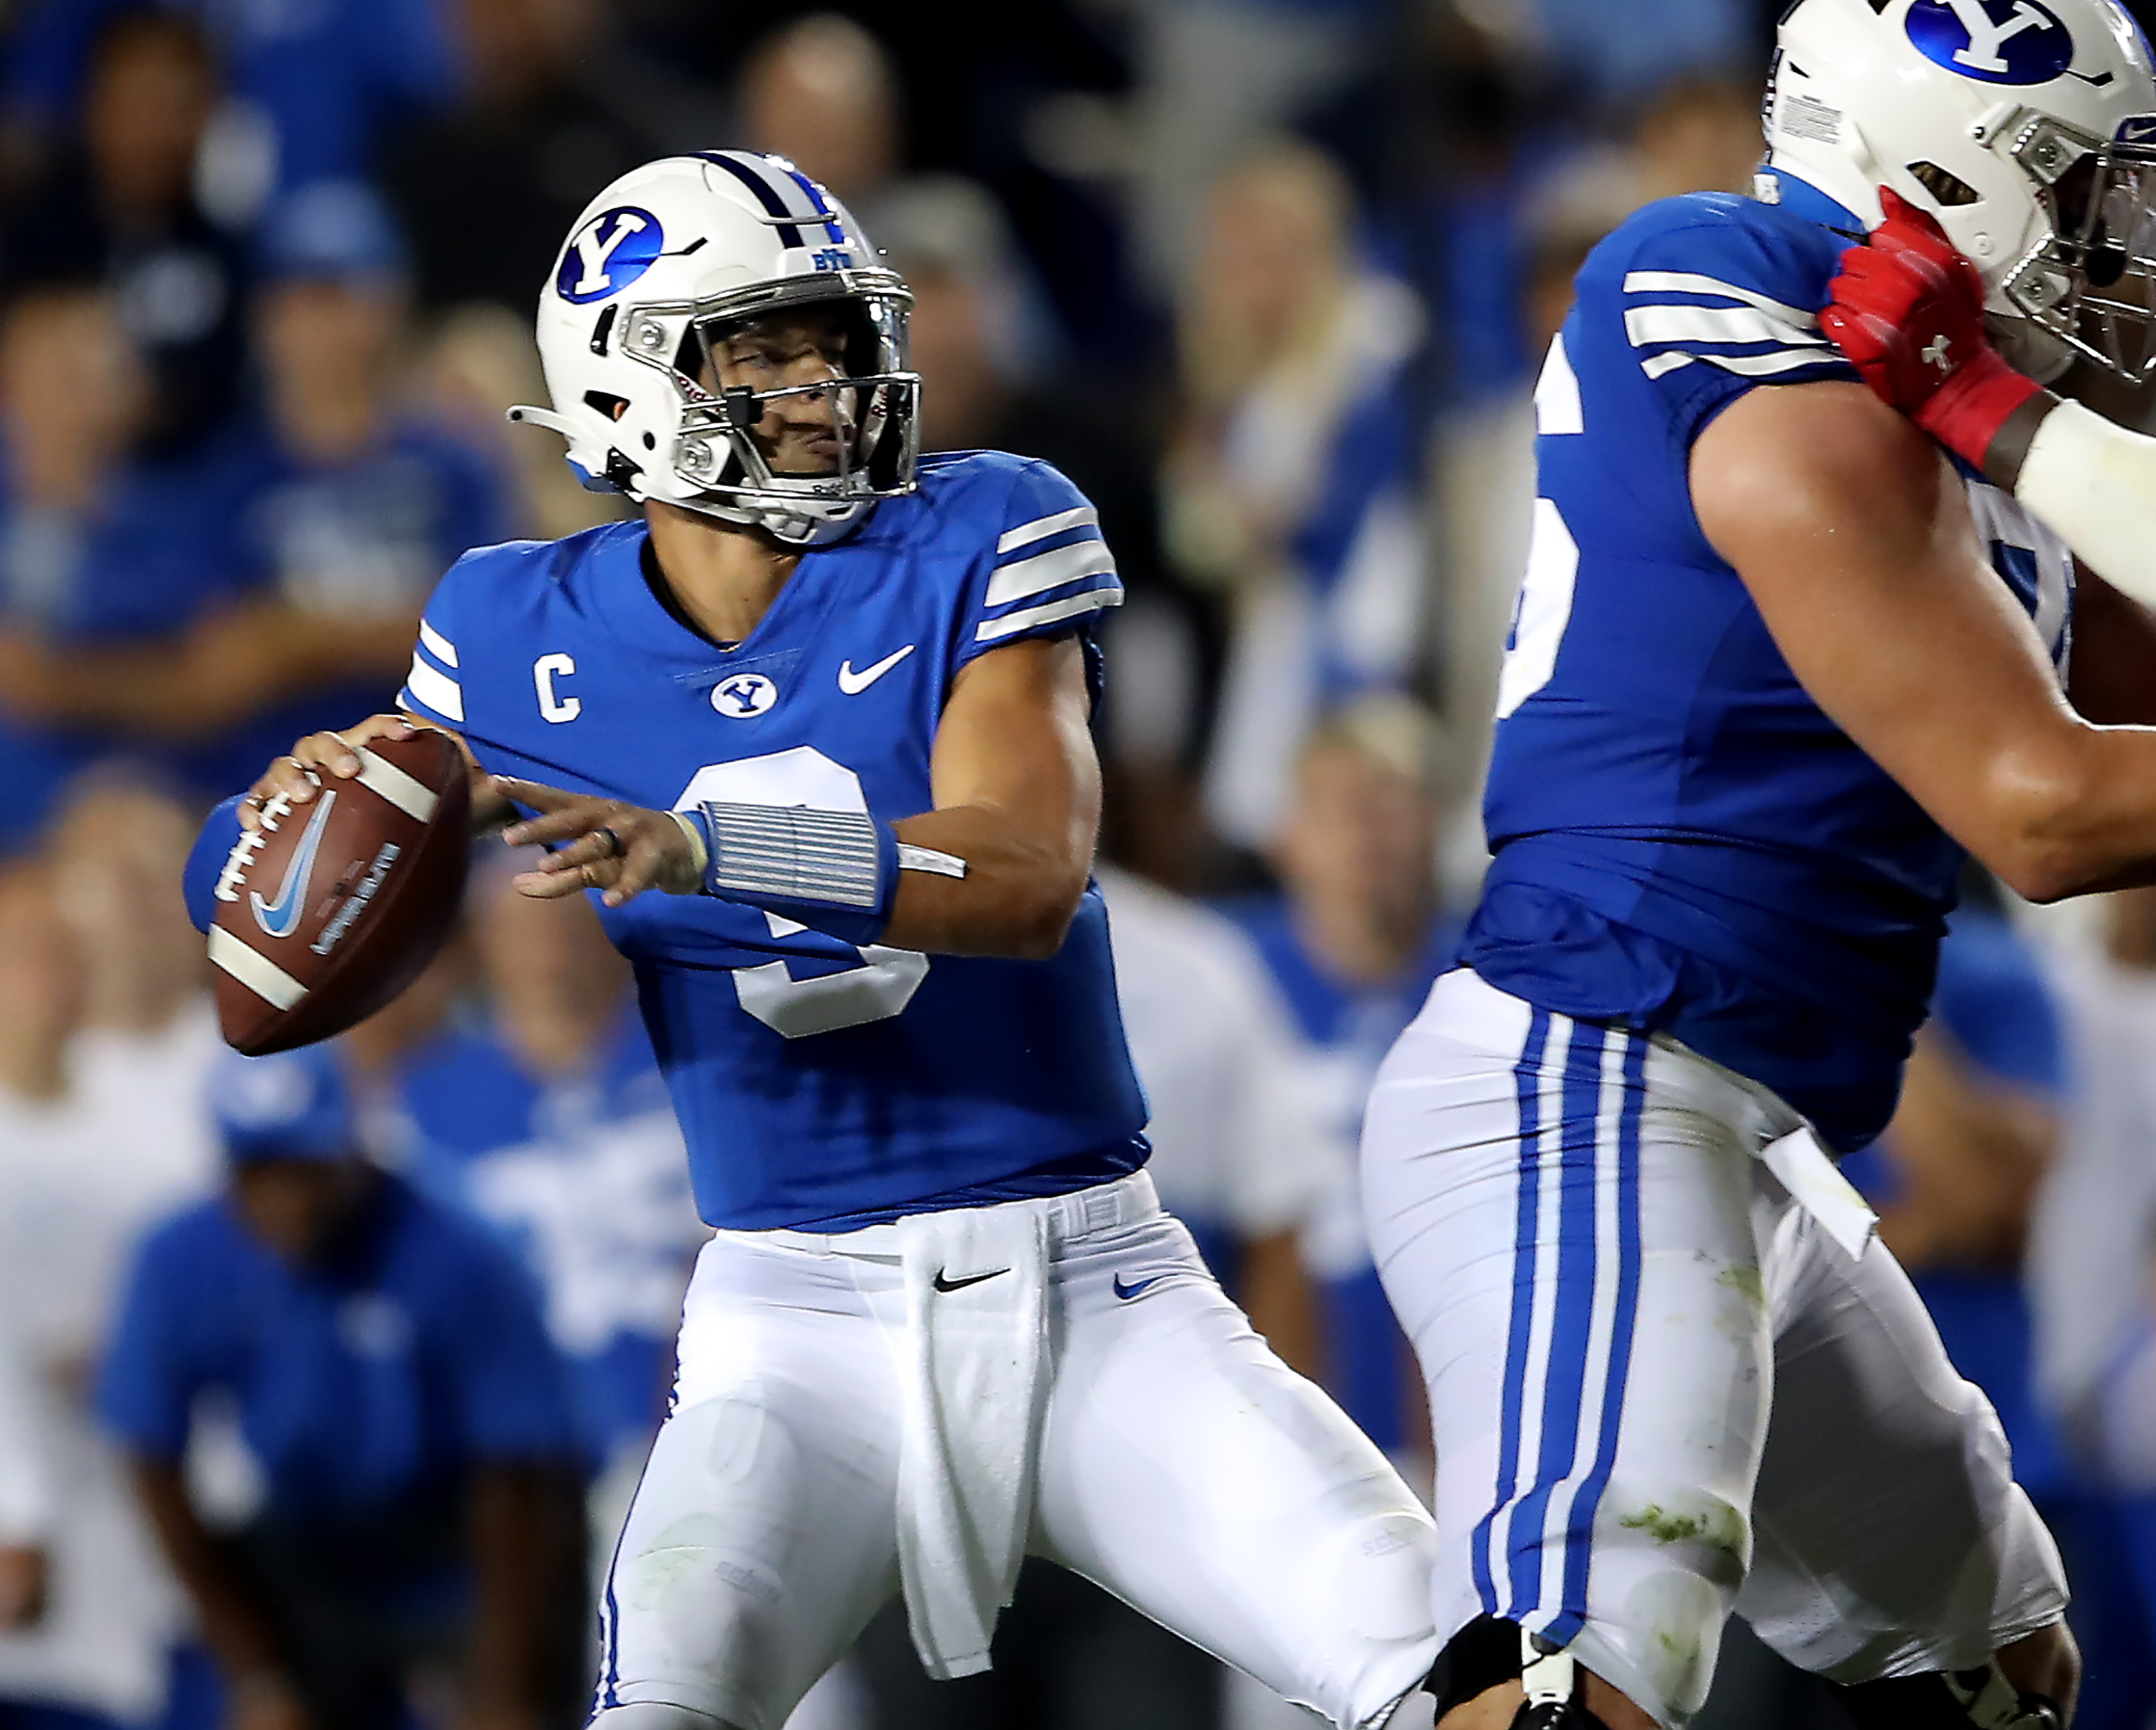 Brigham Young Cougars quarterback Jaren Hall delivers a pass as BYU and Utah play.